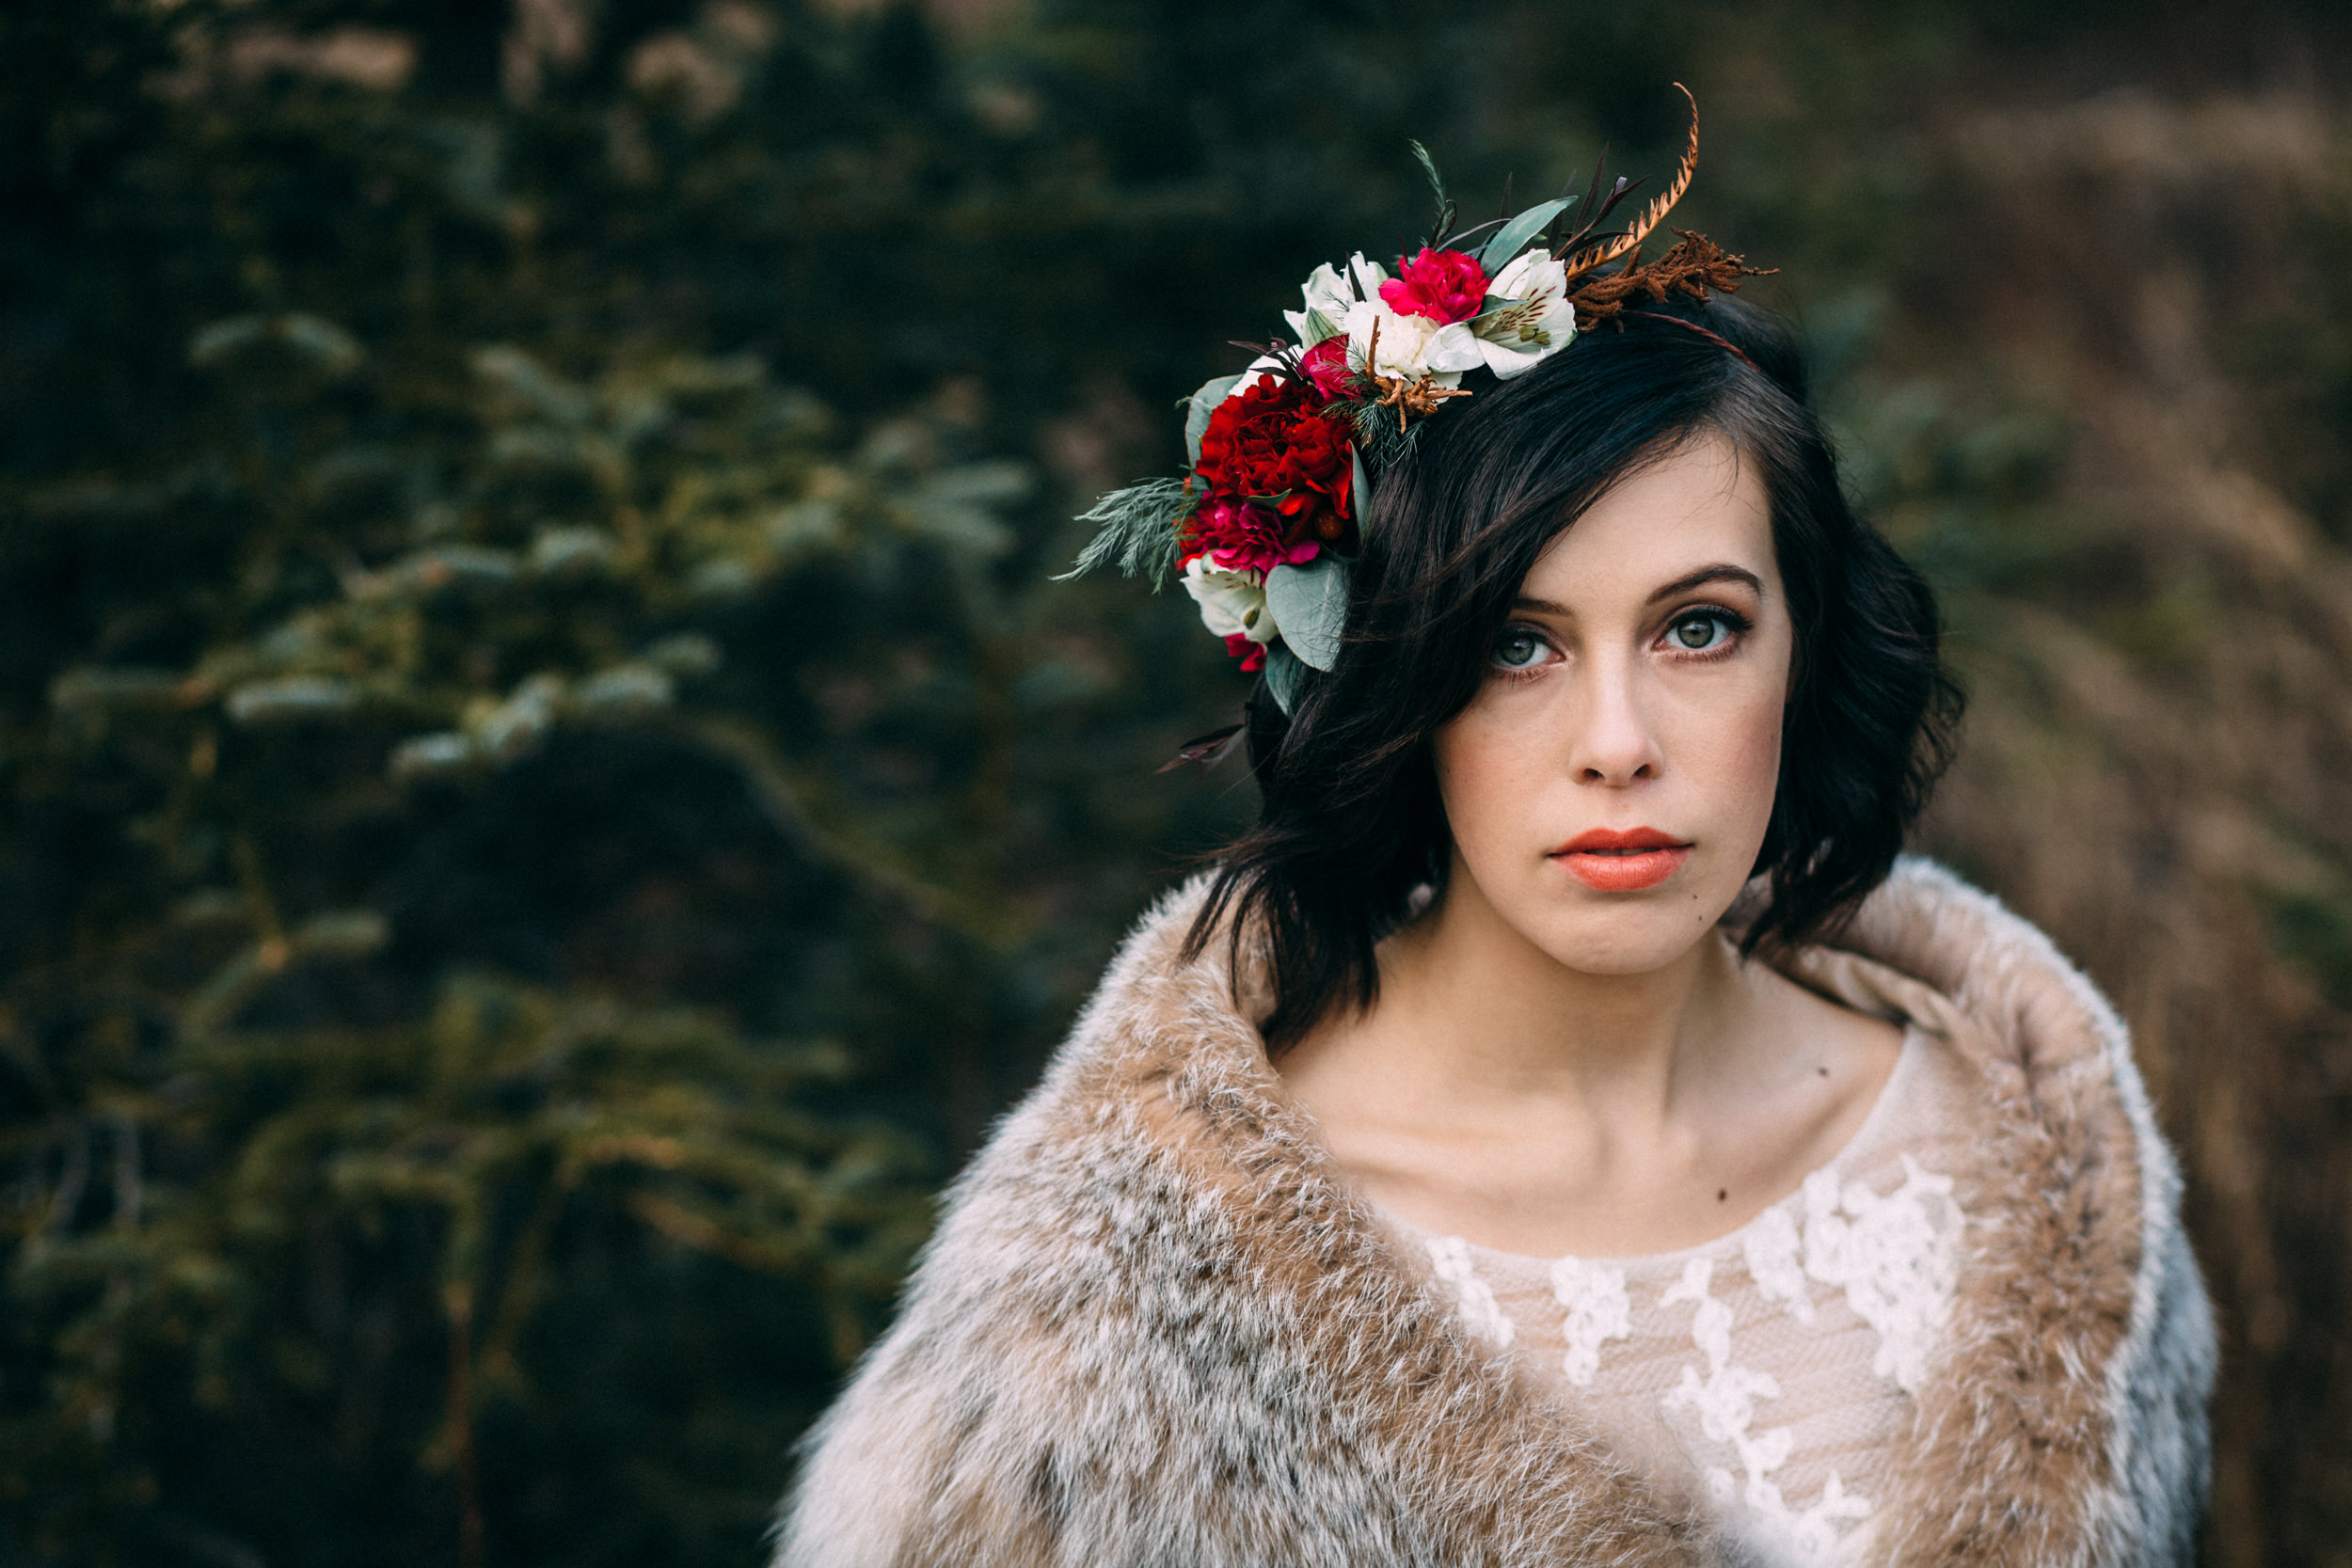 Bride with vibrant flower crown and lynx shawl